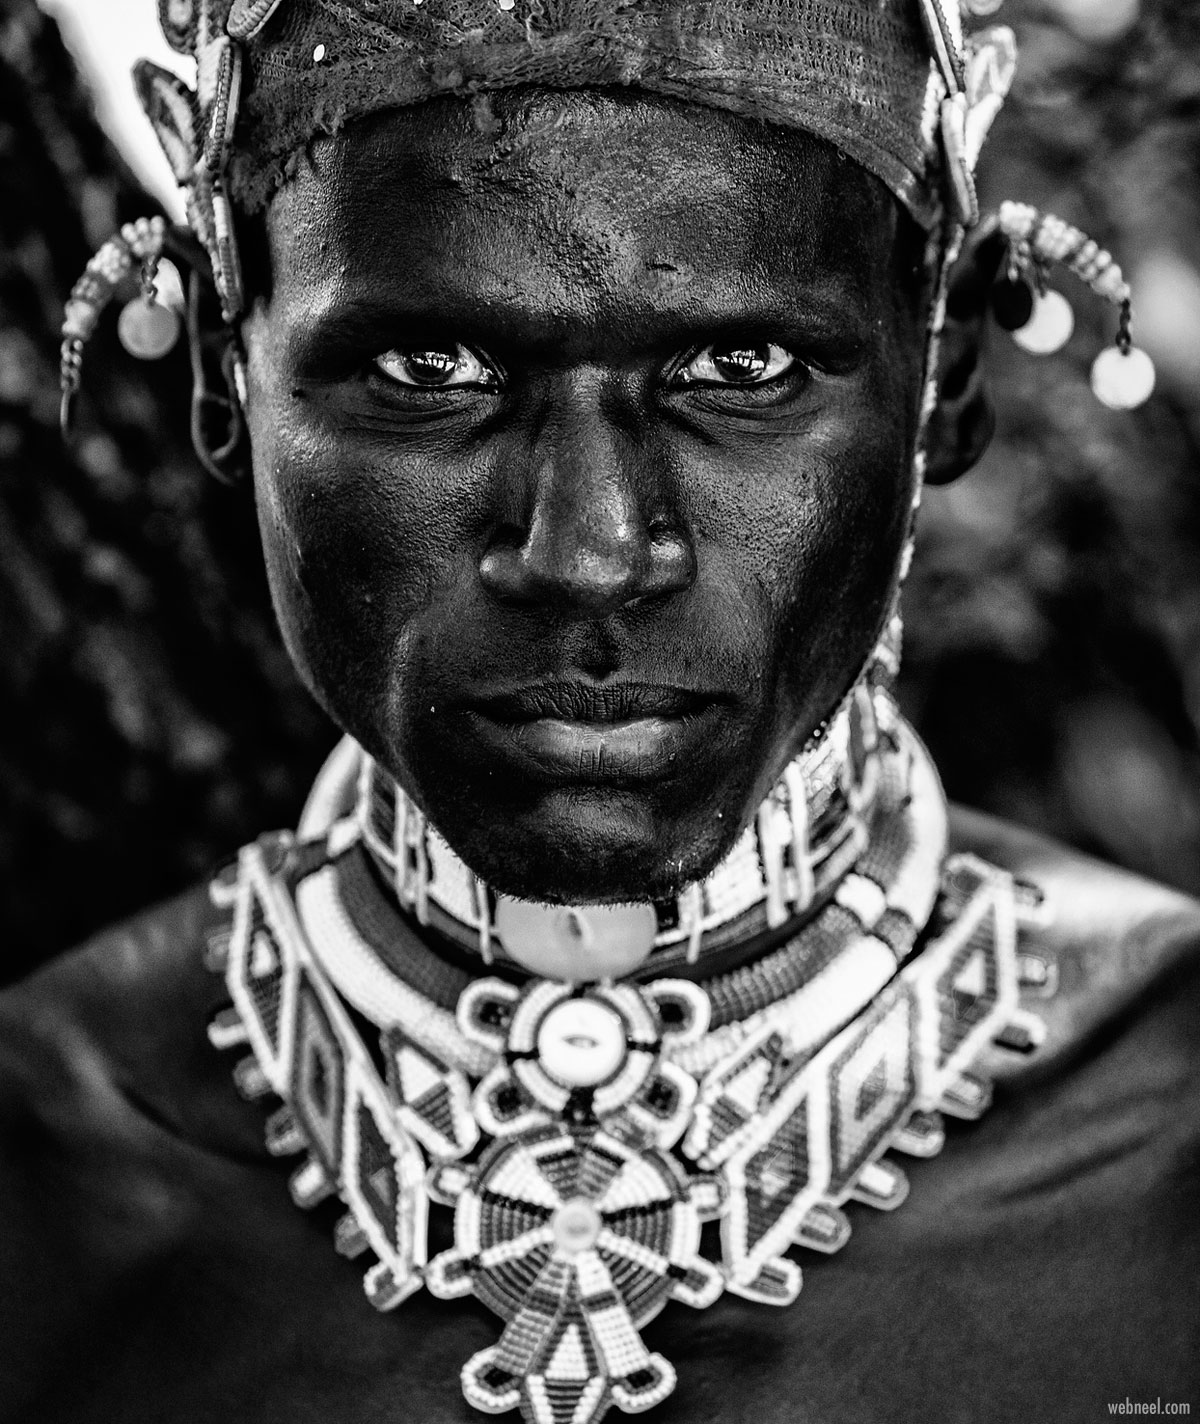 portrait photography tribal samburu man by vedranvidak